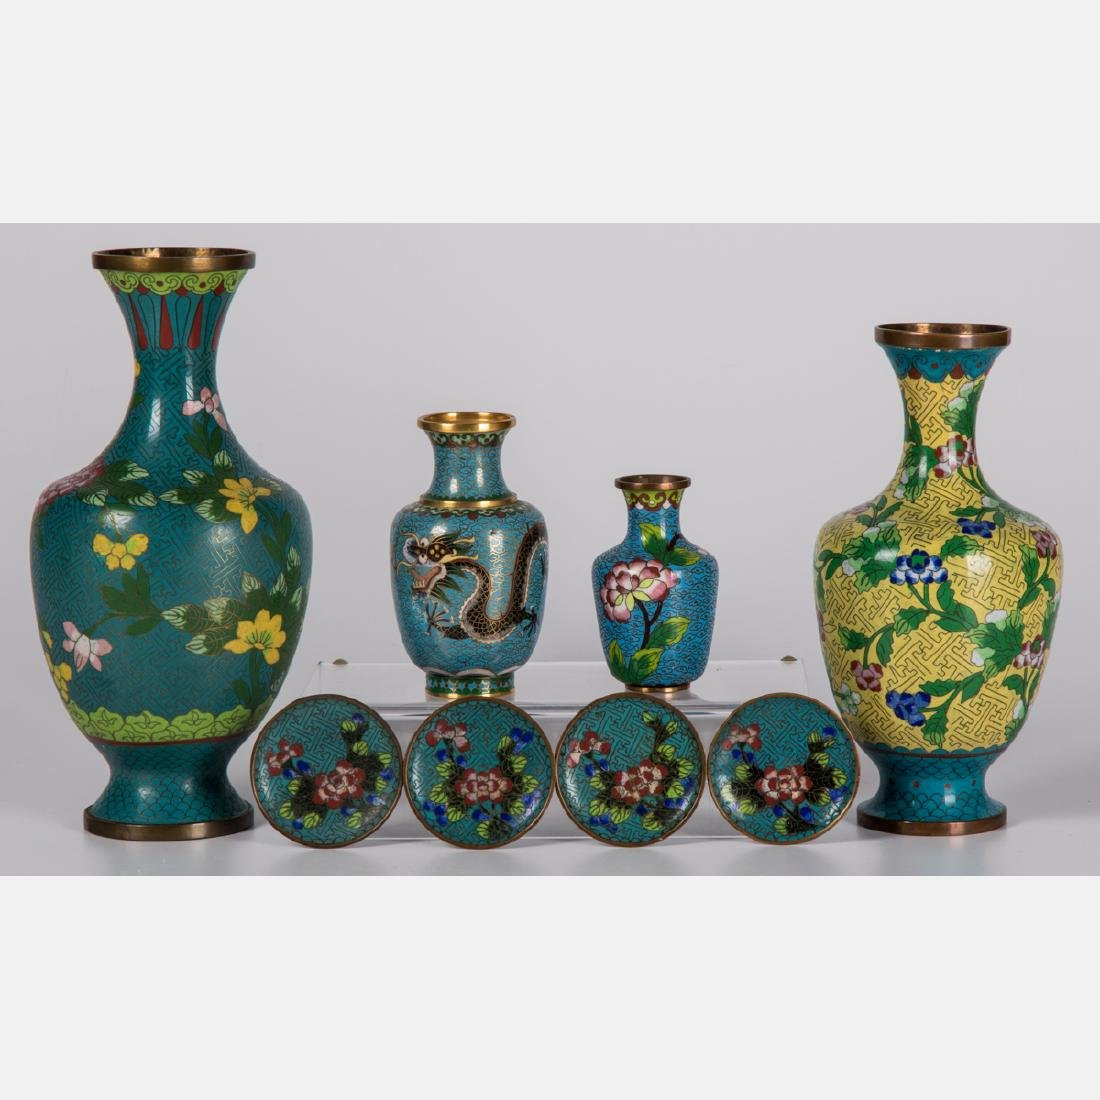 A Group of Eight Chinese Cloisonné Serving and